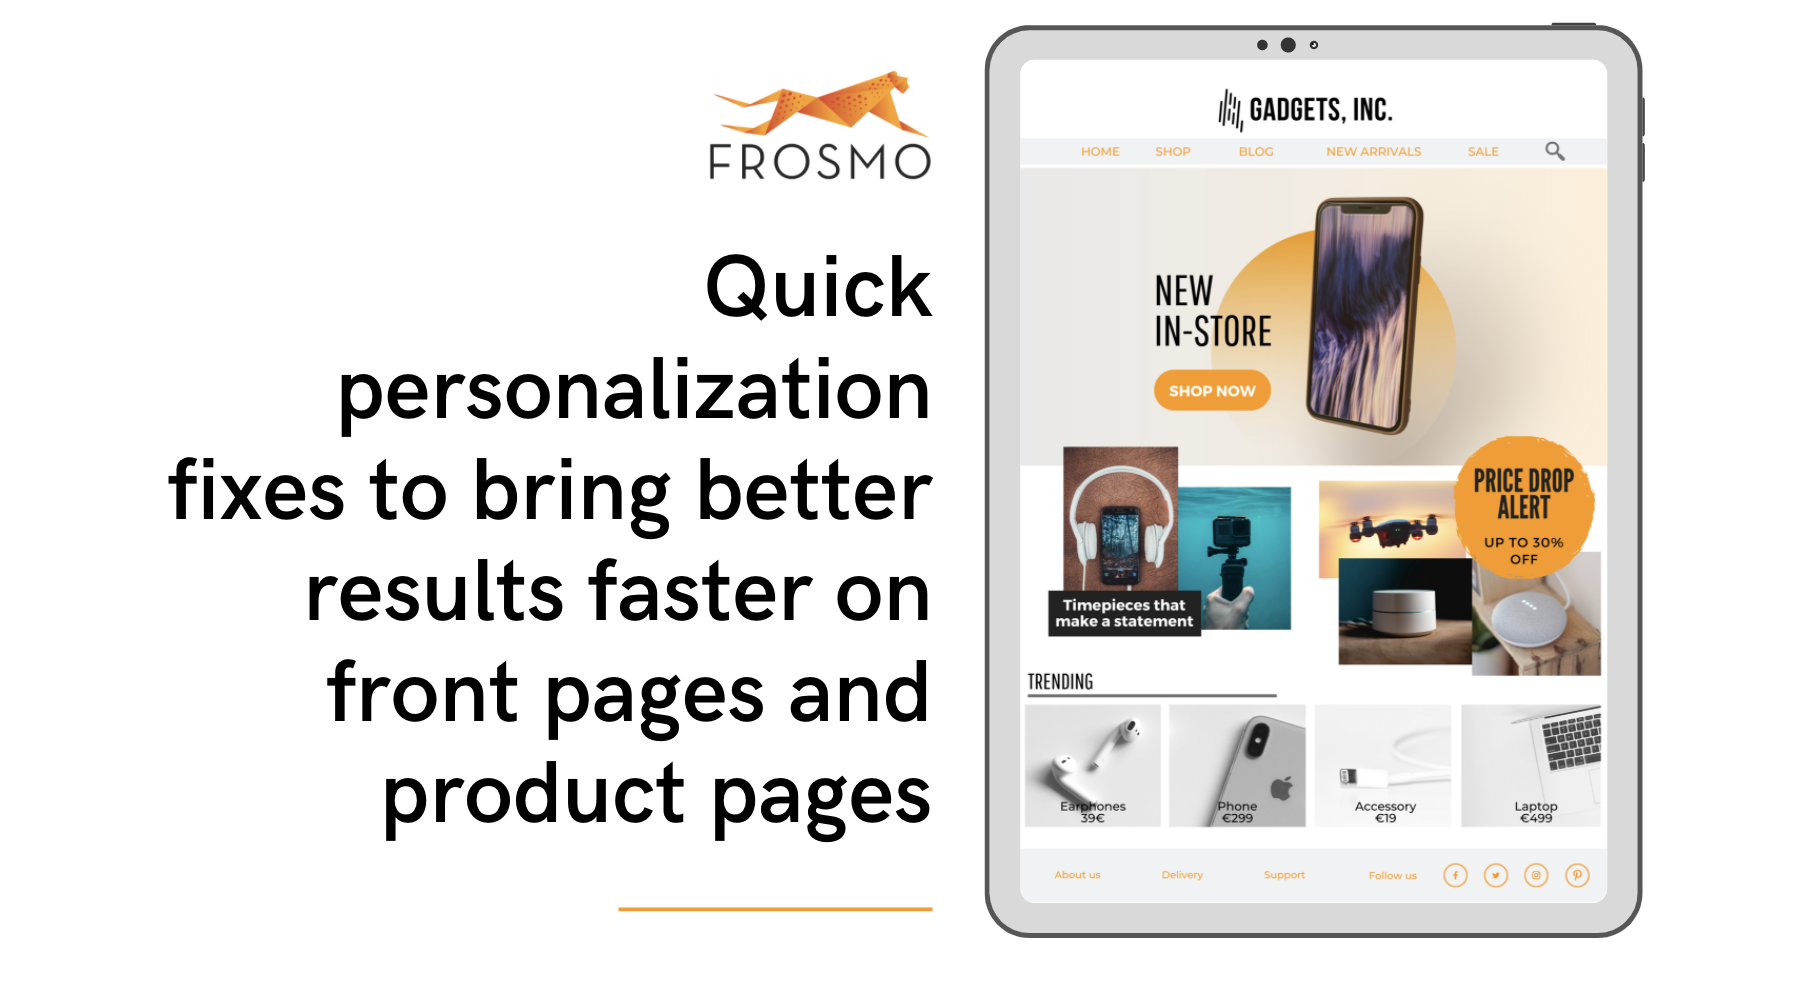 Quick personalization fixes to bring better results faster on front pages and product pages